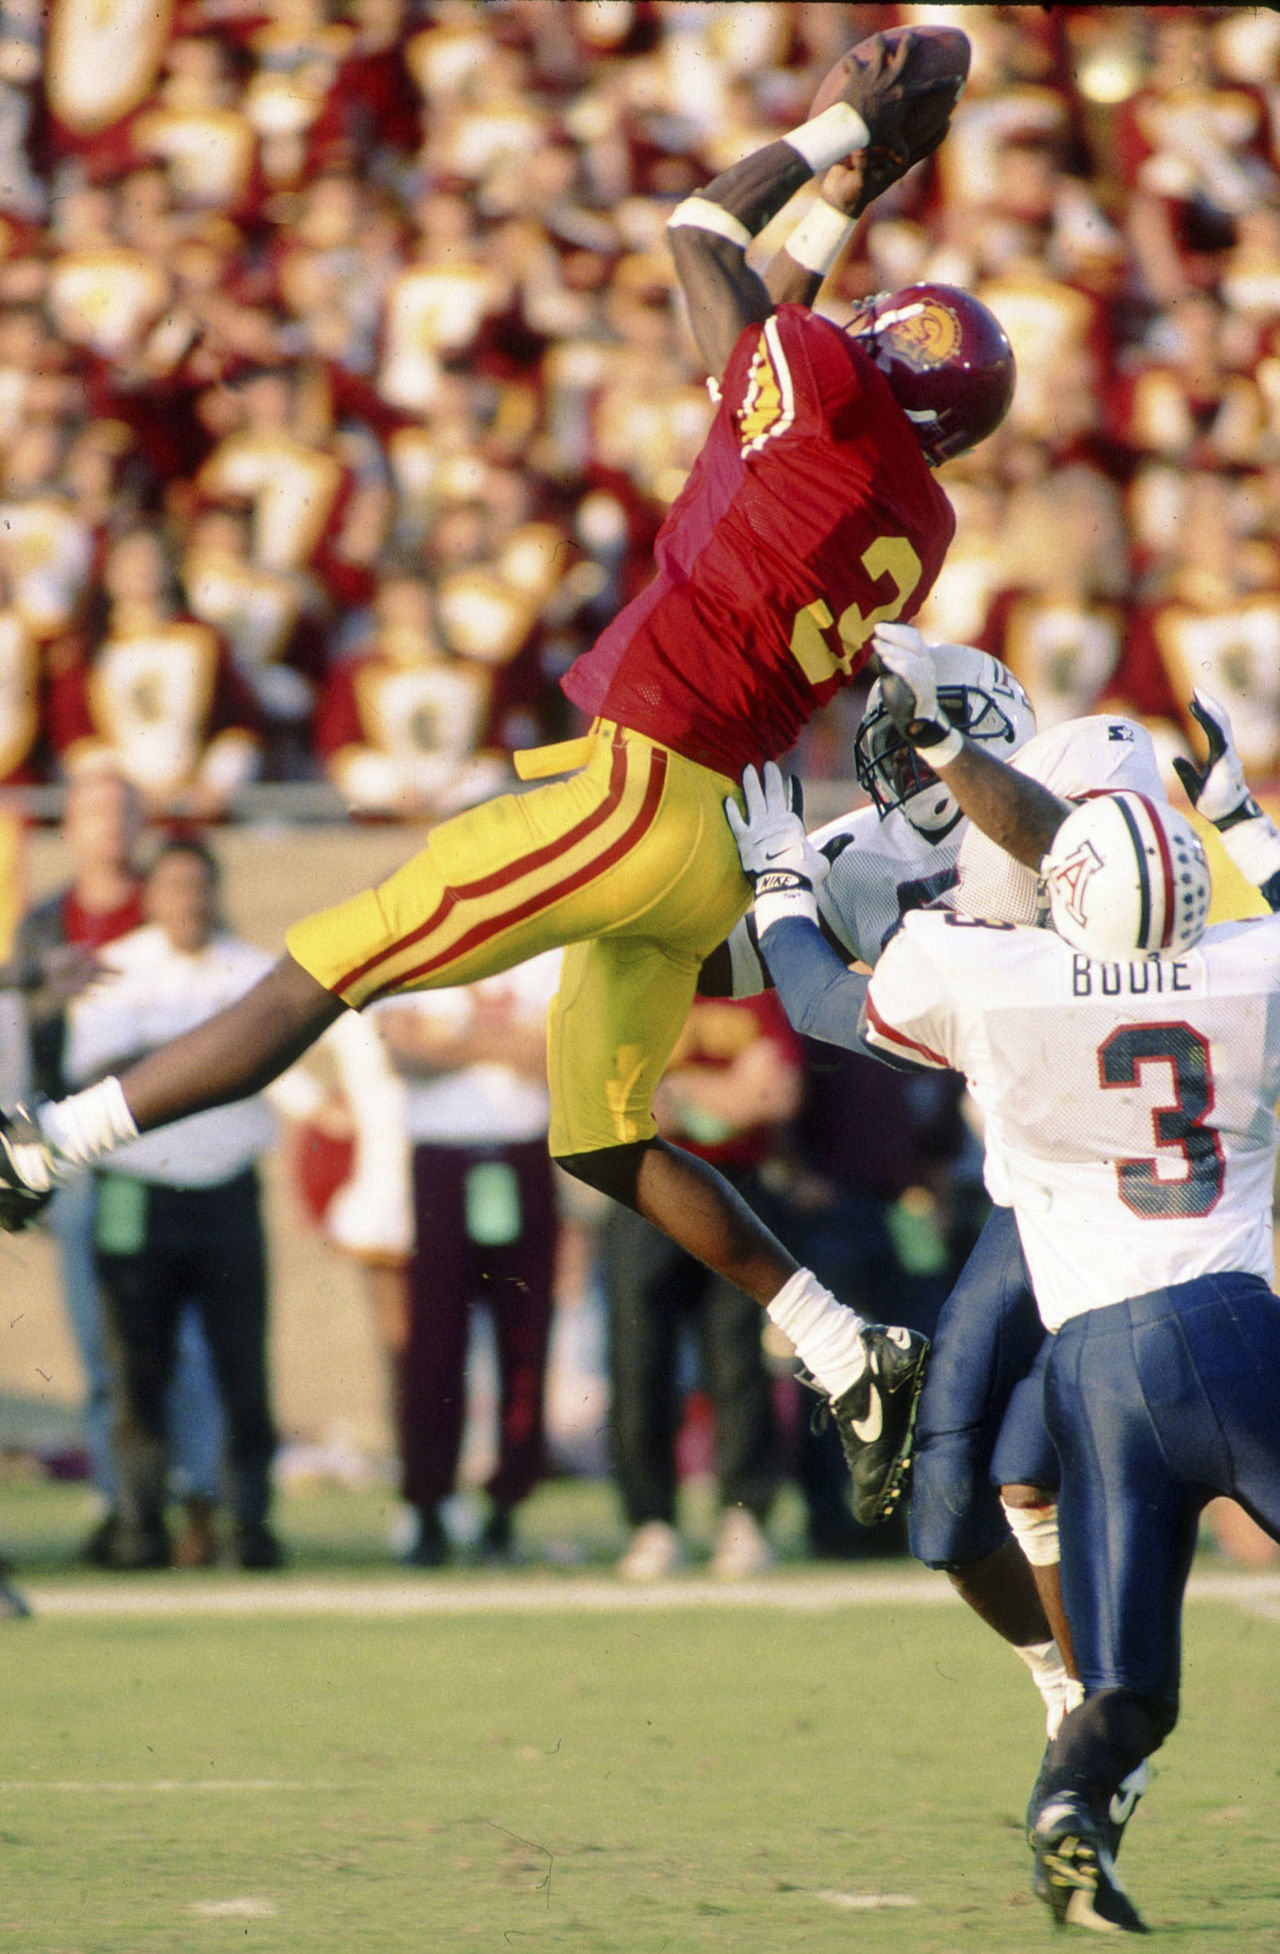 USC Trojans wide receiver Keyshawn Johnson (3) leaps to make a reception in front of Arizona Cardinals safety Tony Bouie (3) during an NCAA game in Los Angeles on November 12, 1994.  The Trojans defeated the Wildcats 45-28.